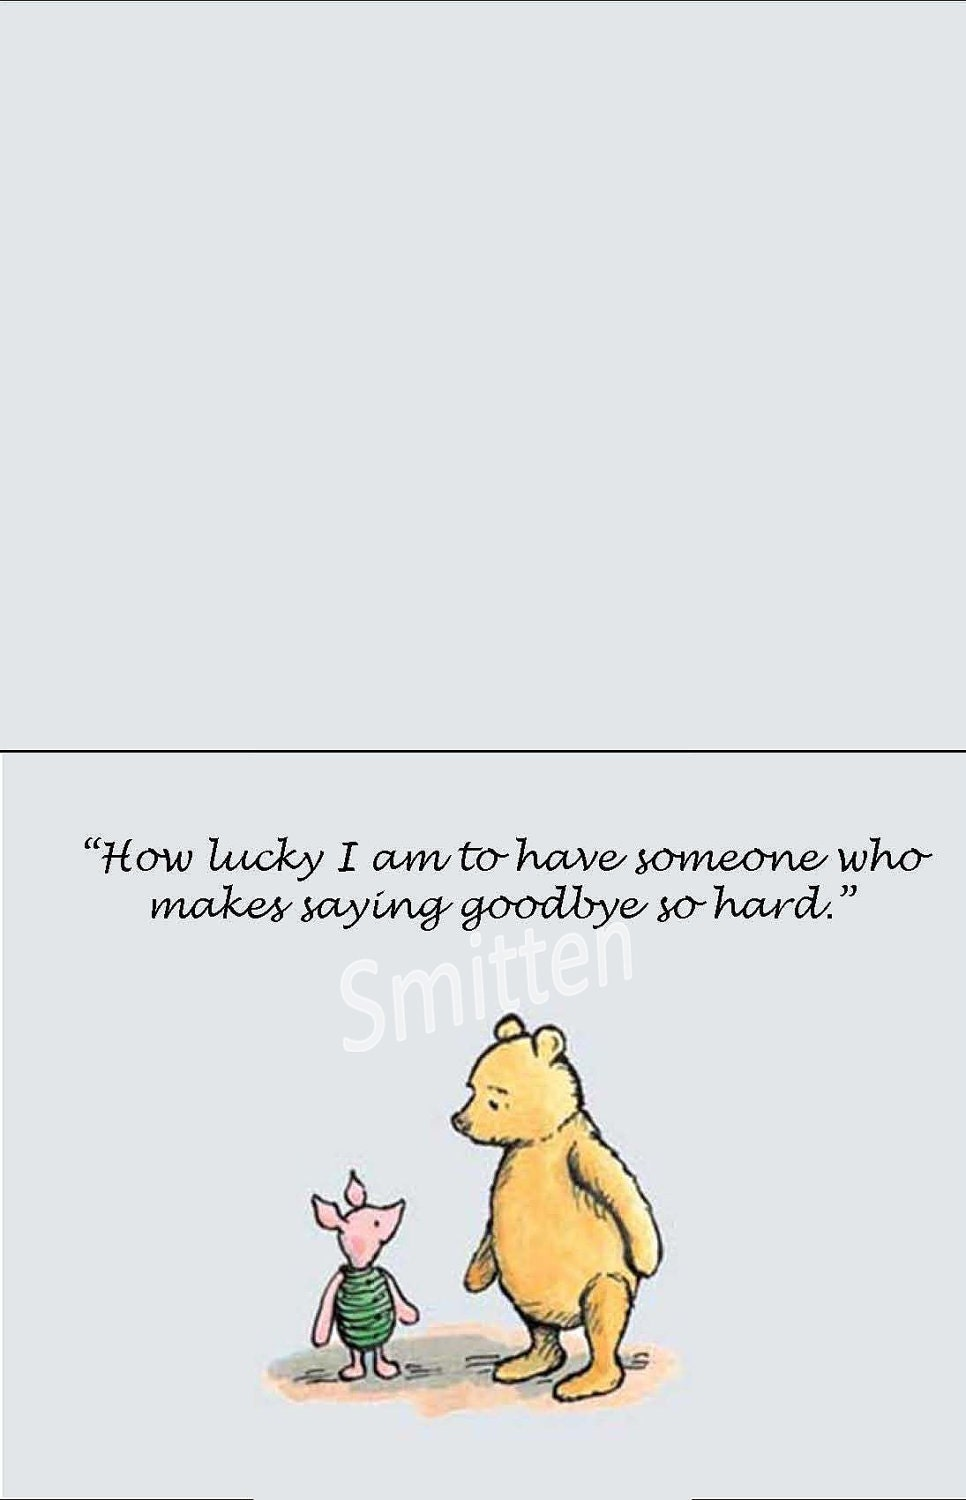 Pooh Quote About Saying Goodbye: Winne The Pooh And Piglet Quote Art Notecard By